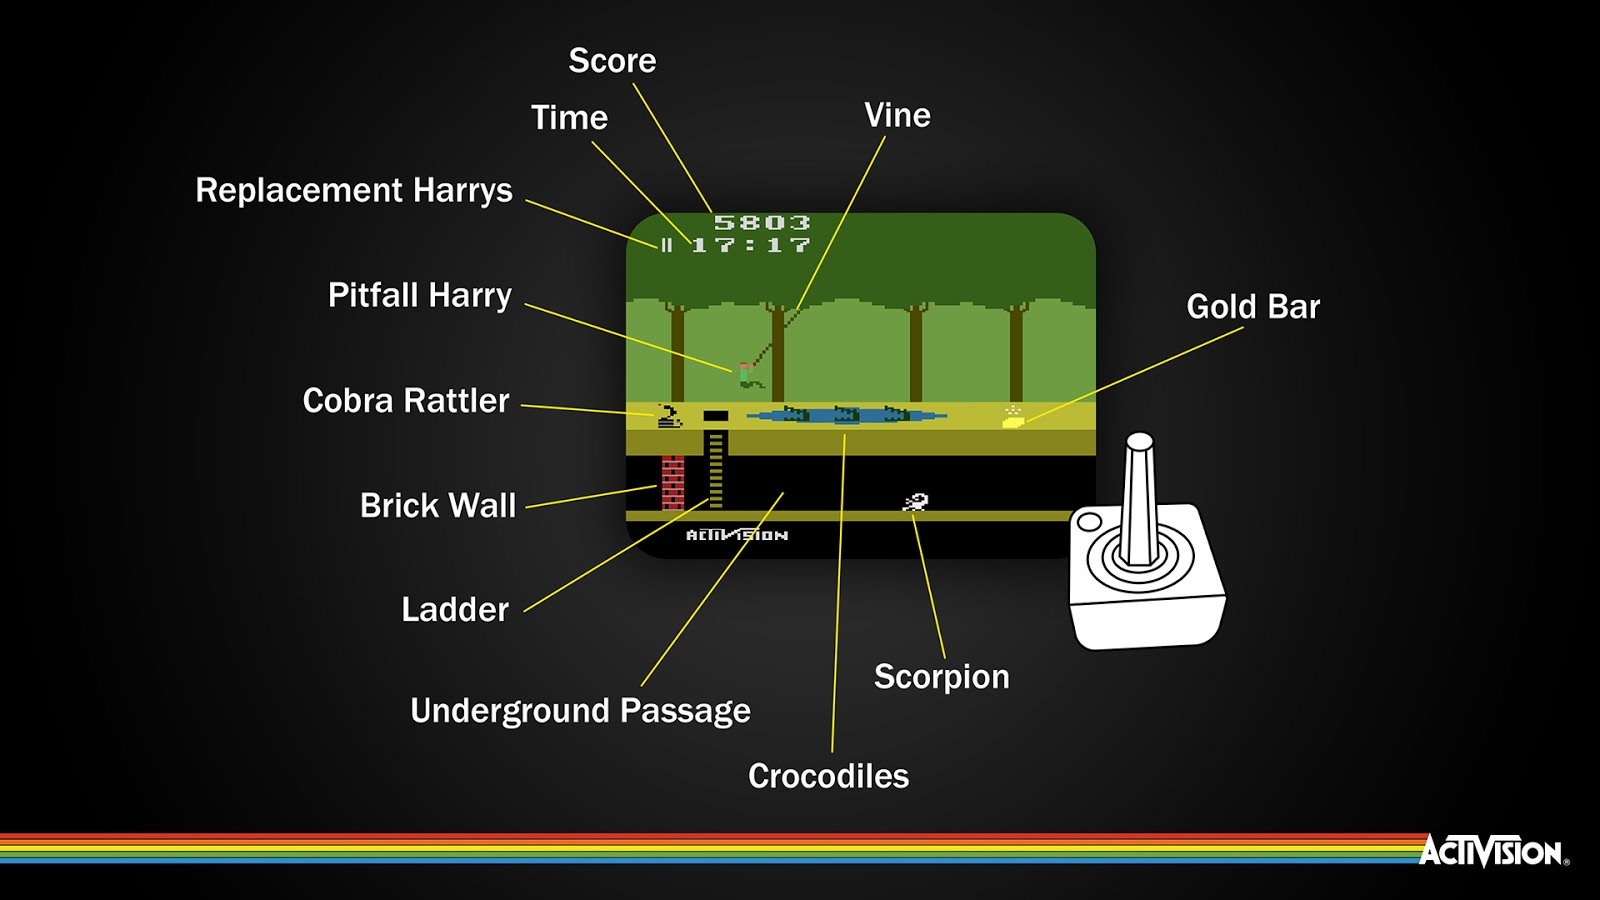 The Edge: Activision Recently Opened The Vaults To Celebrate Pitfall Harry's 37th Birthday